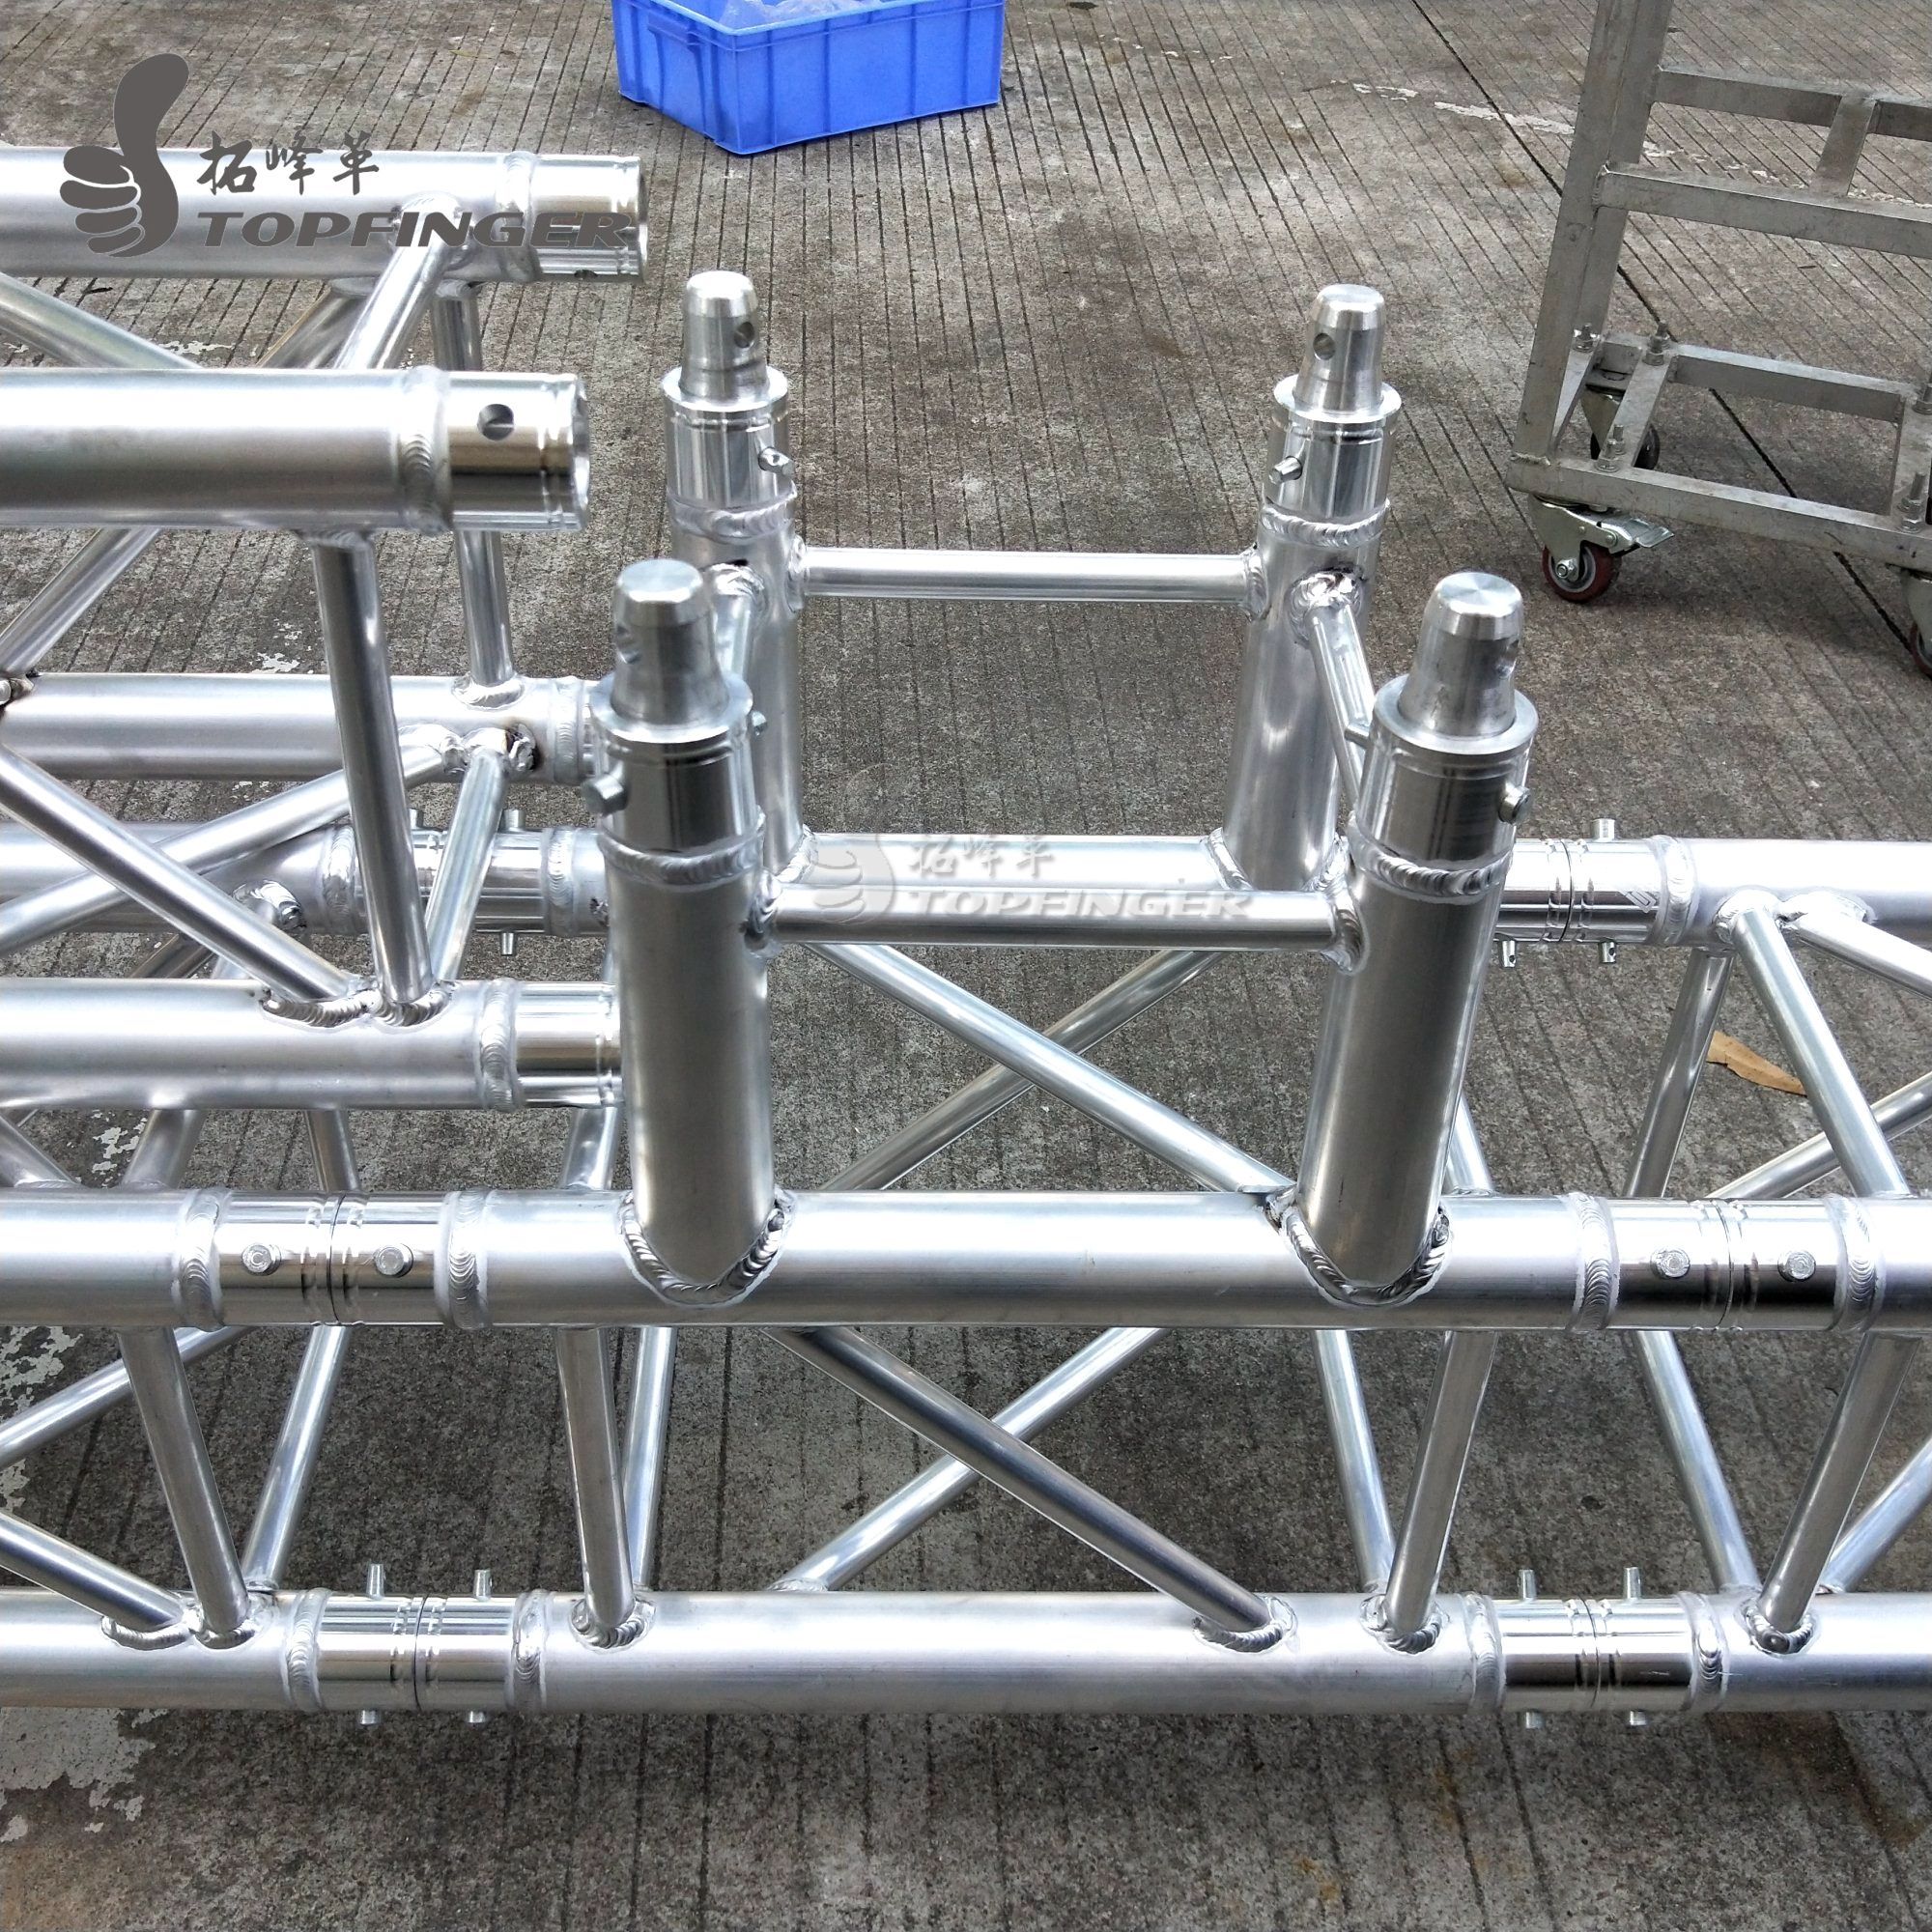 Truss 0 5m(1 64ft)3-way T junction aluminium roof trusses used stage